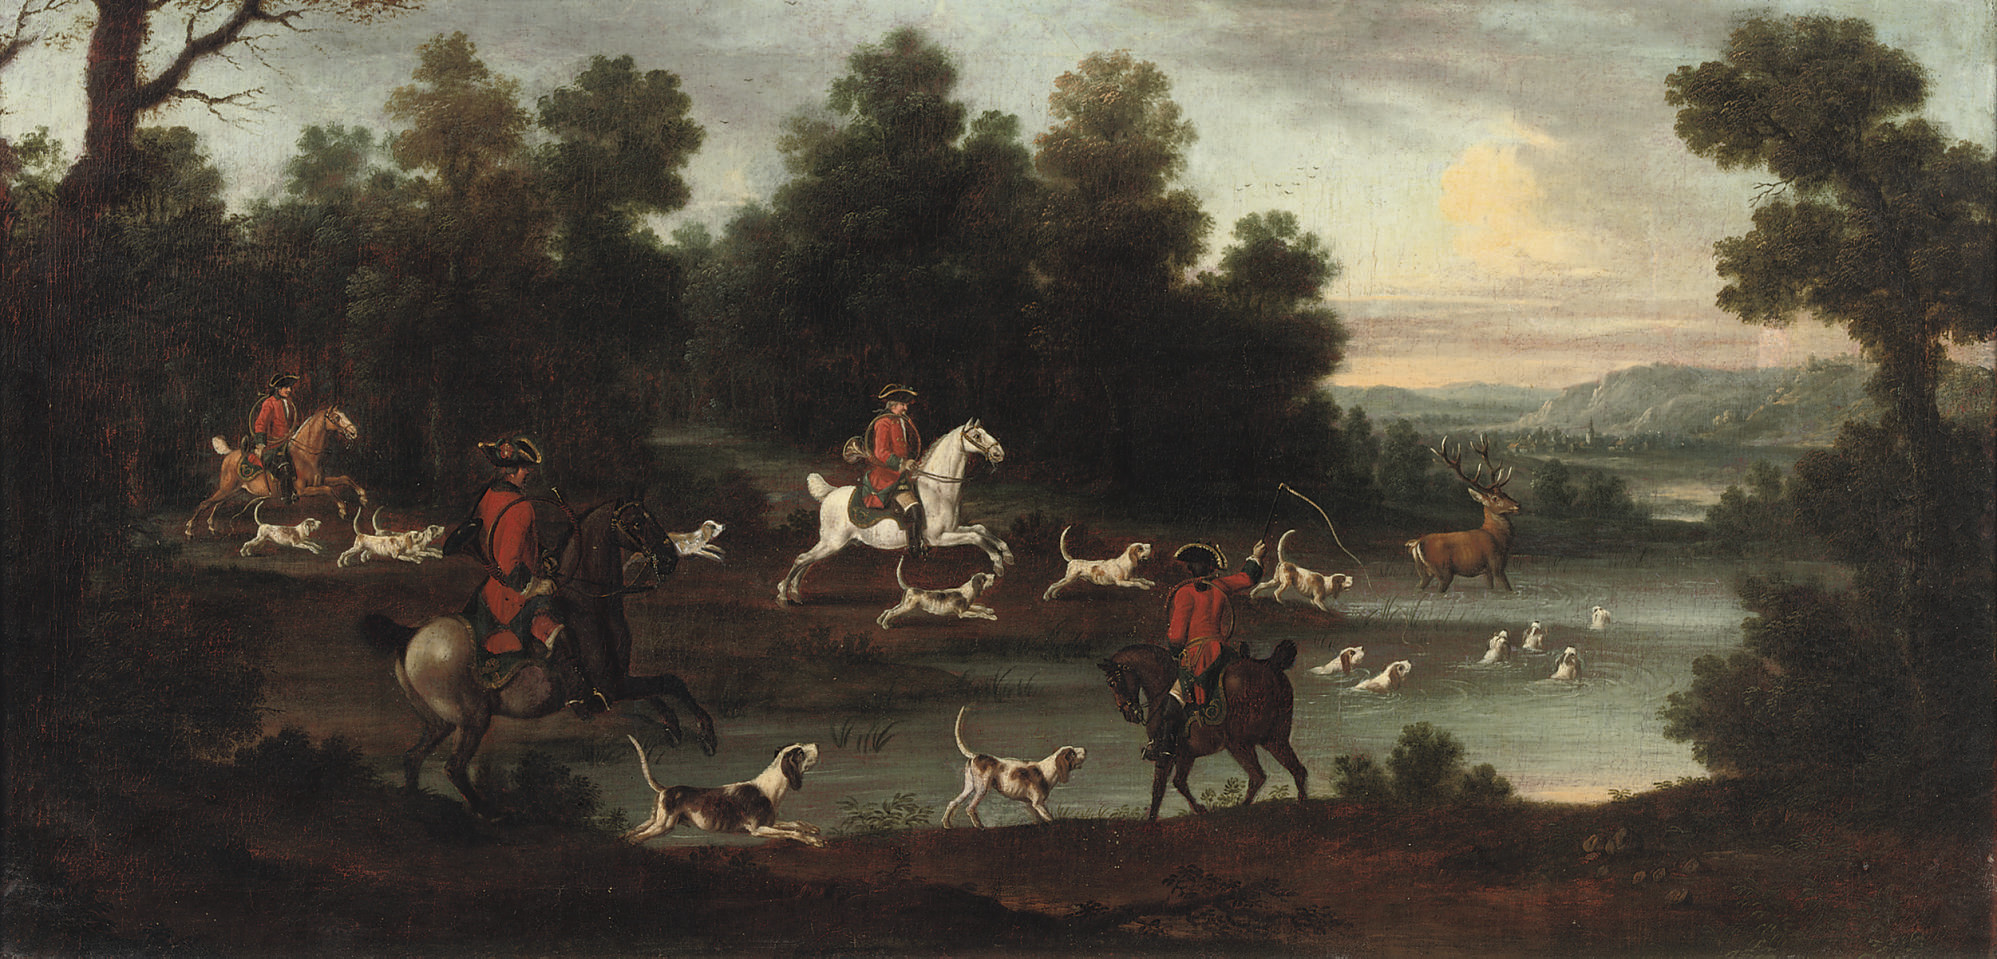 An extensive wooded river landscape with a hunting party pursuing a deer